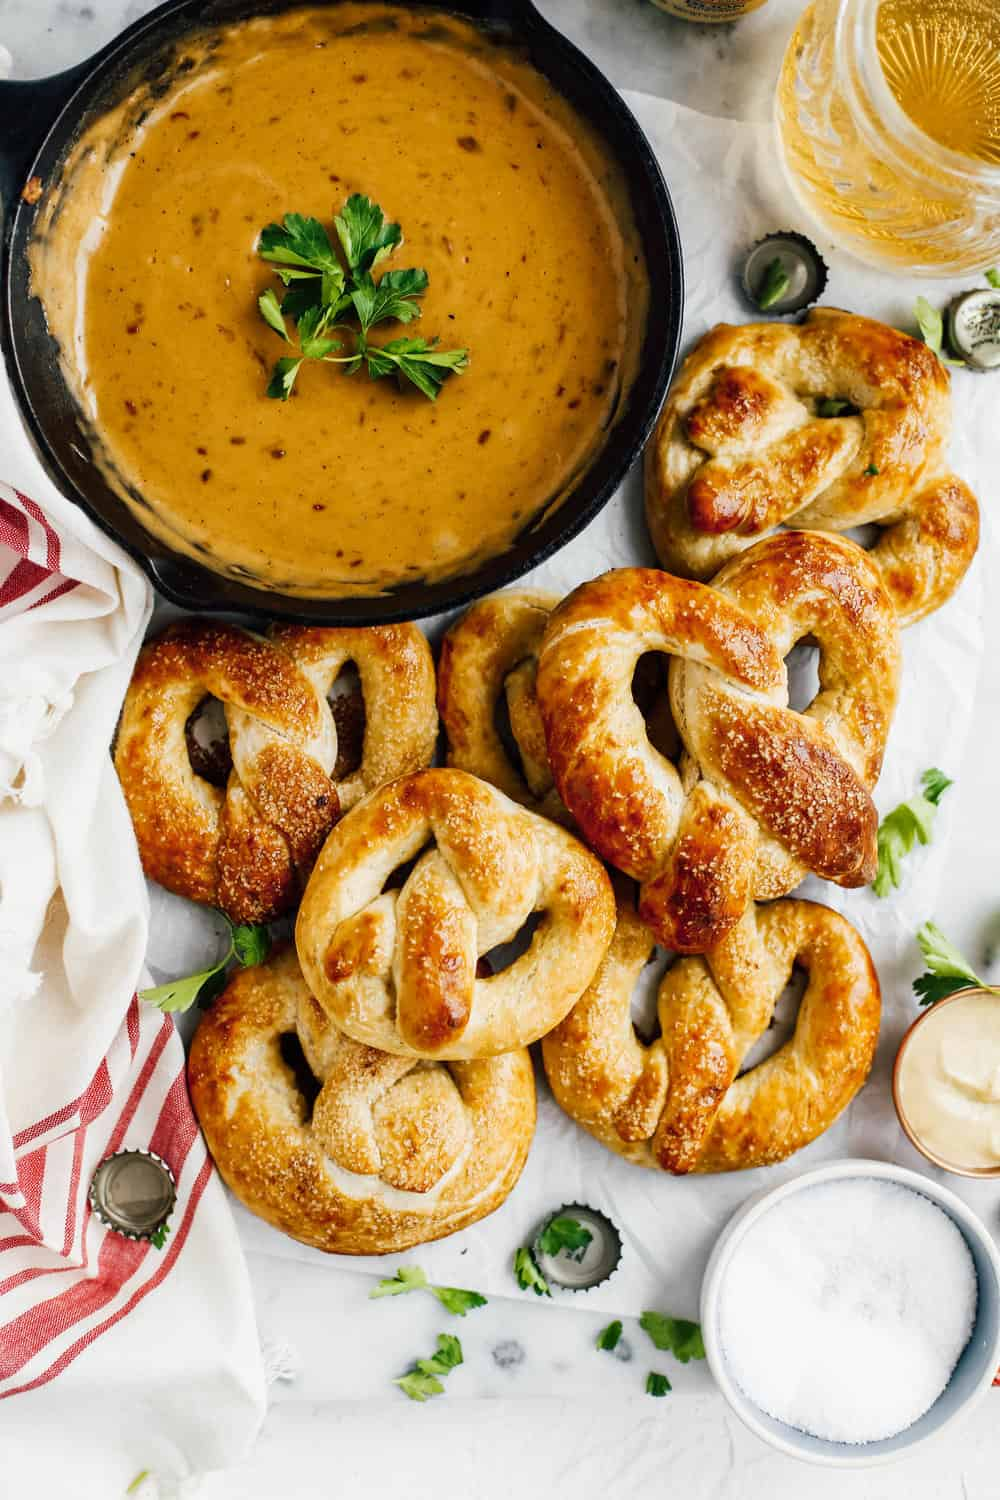 soft homemade pretzels with beer cheese dip in cast iron skillet